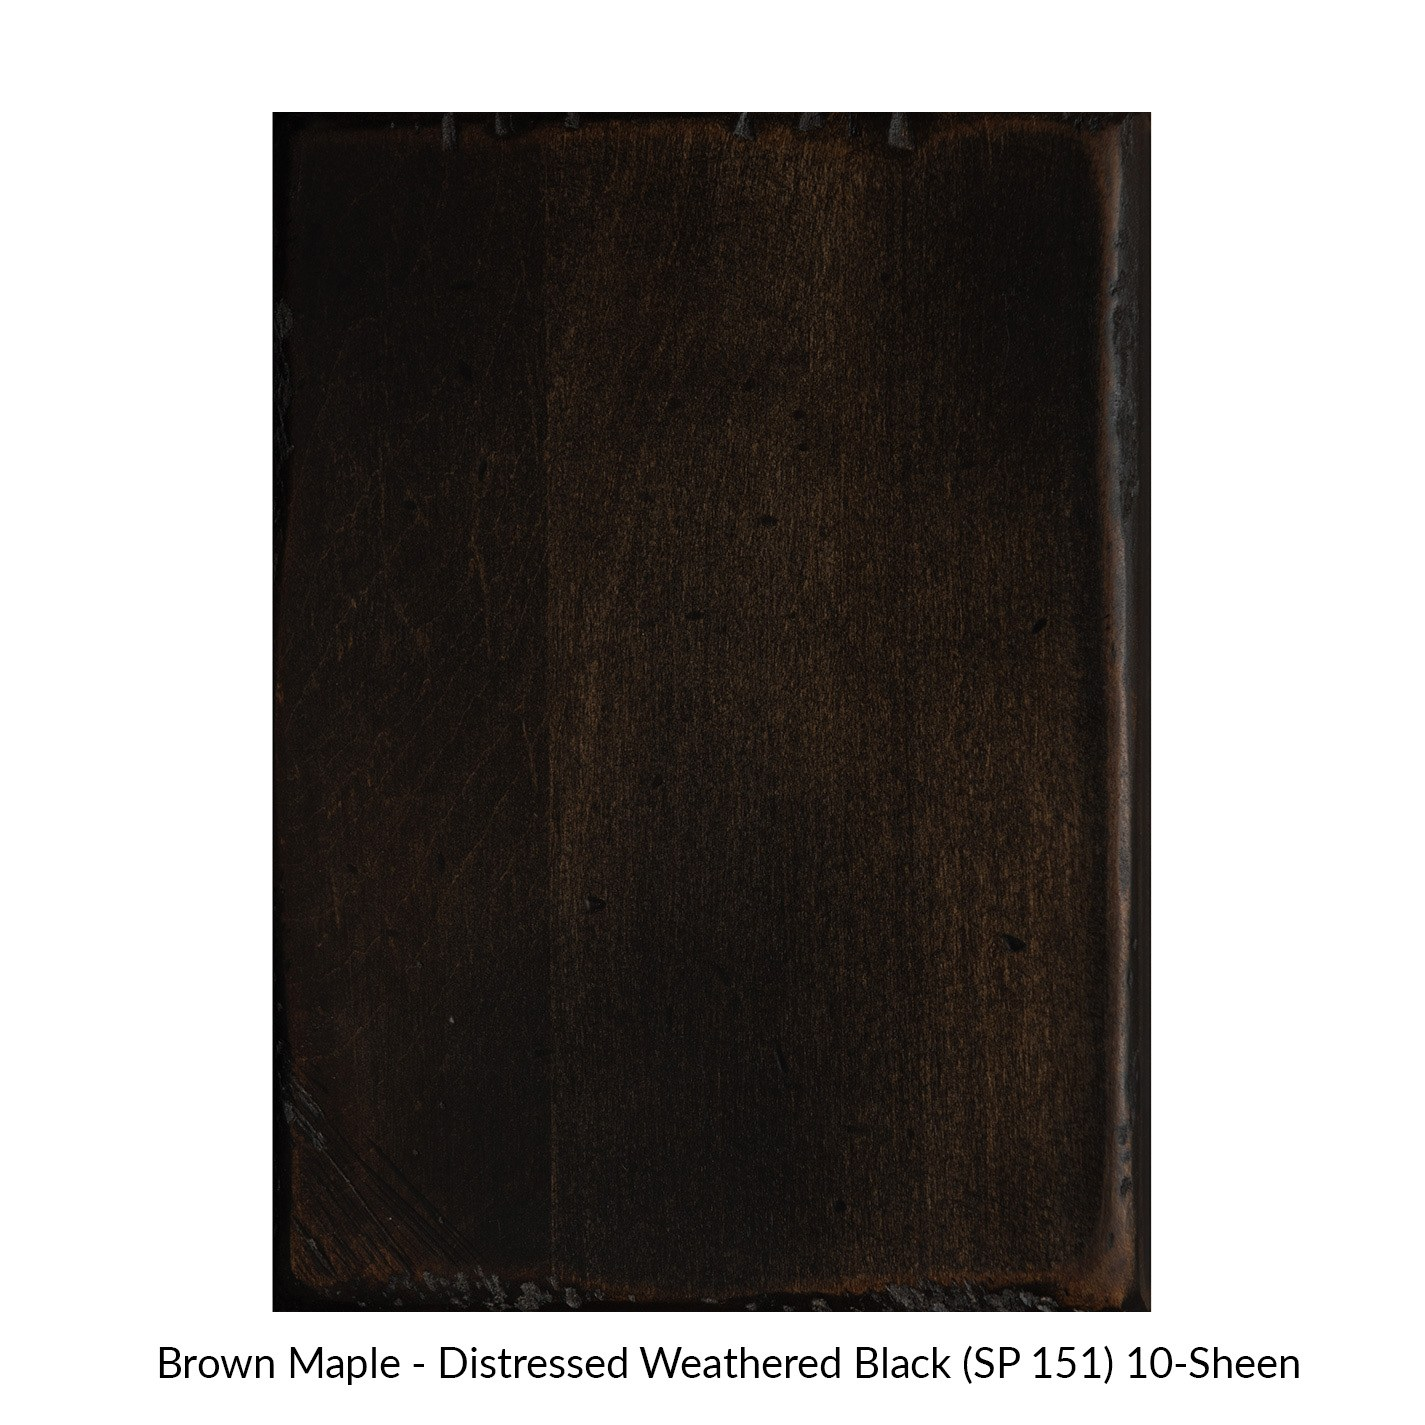 spectrum-brown-maple-distressed-weathered-black-sp-151.jpg